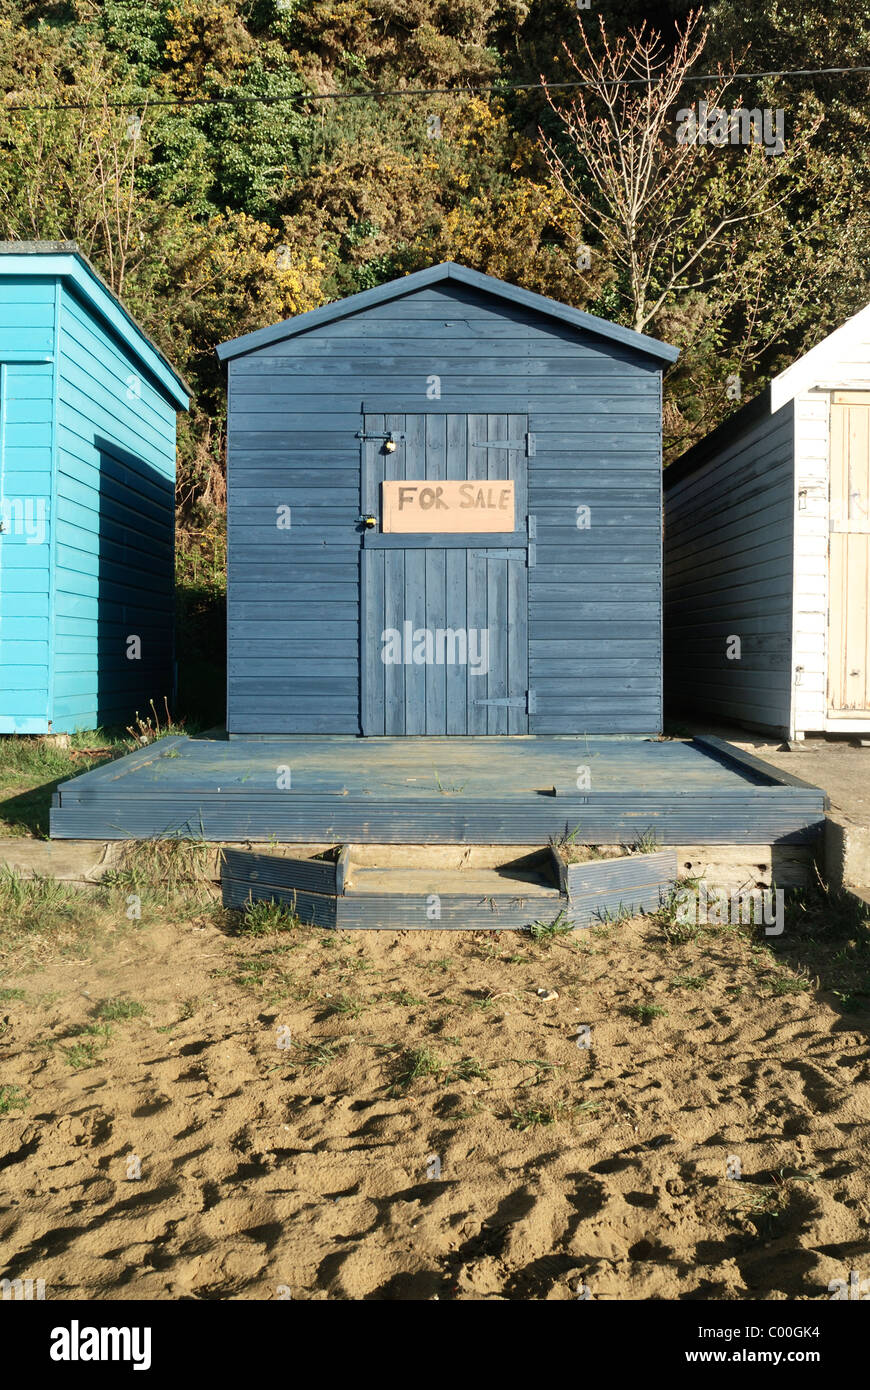 Beach Hut For Sale Shanklin Isle Of Wight England Uk Stock Photo